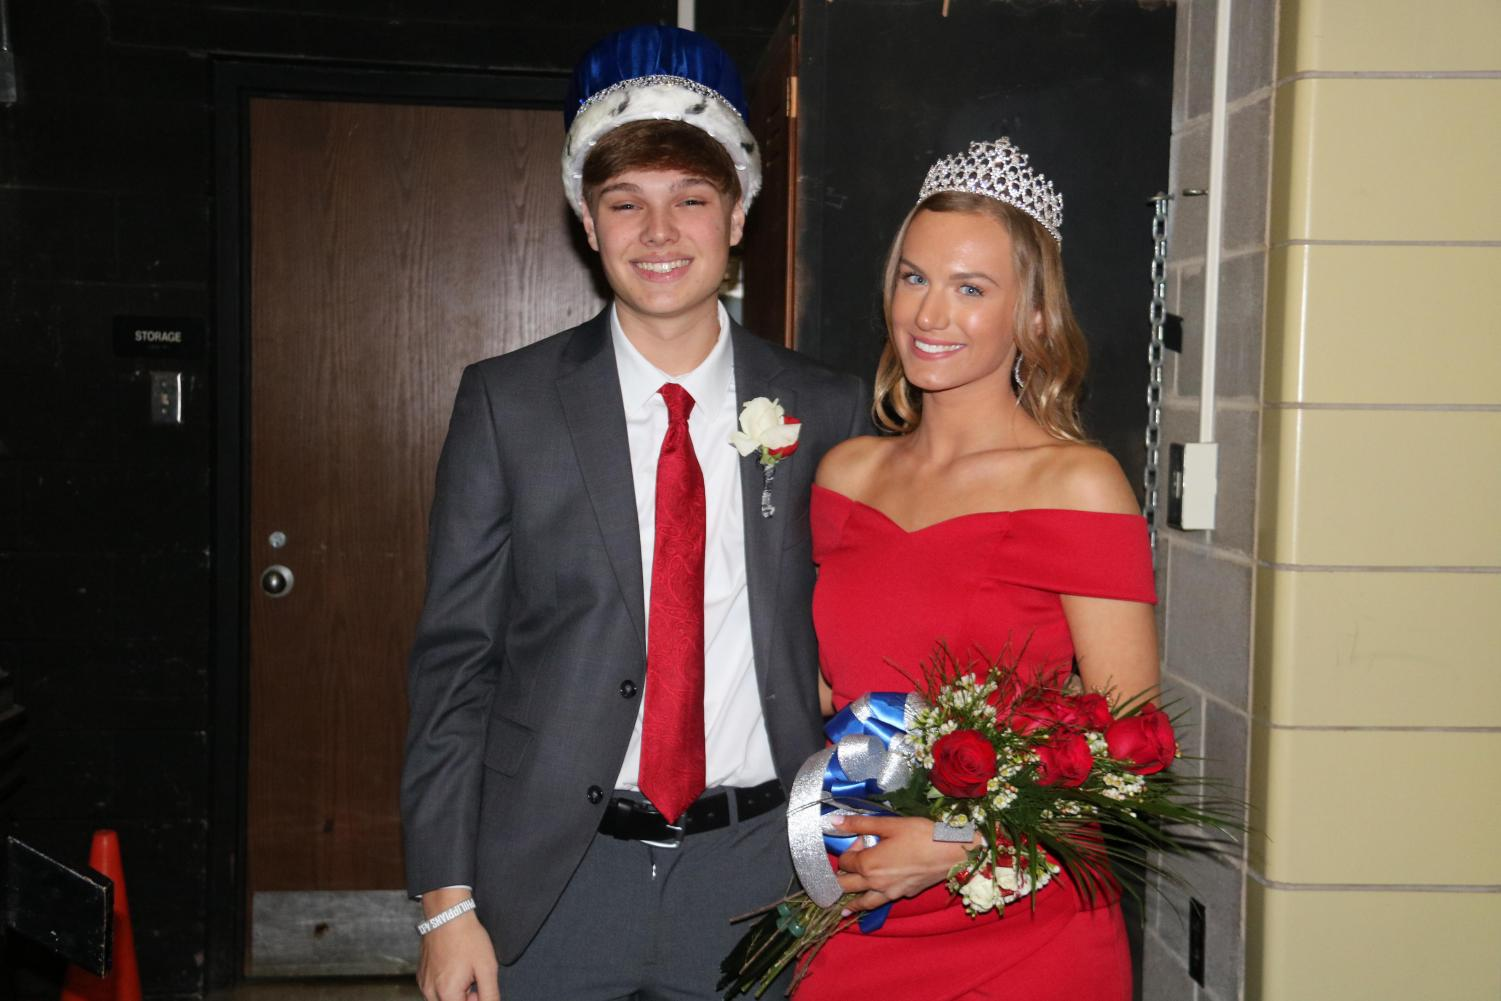 Eddie Morgan (11) and Emily Turner (10) receiving the winter formal king and queen.